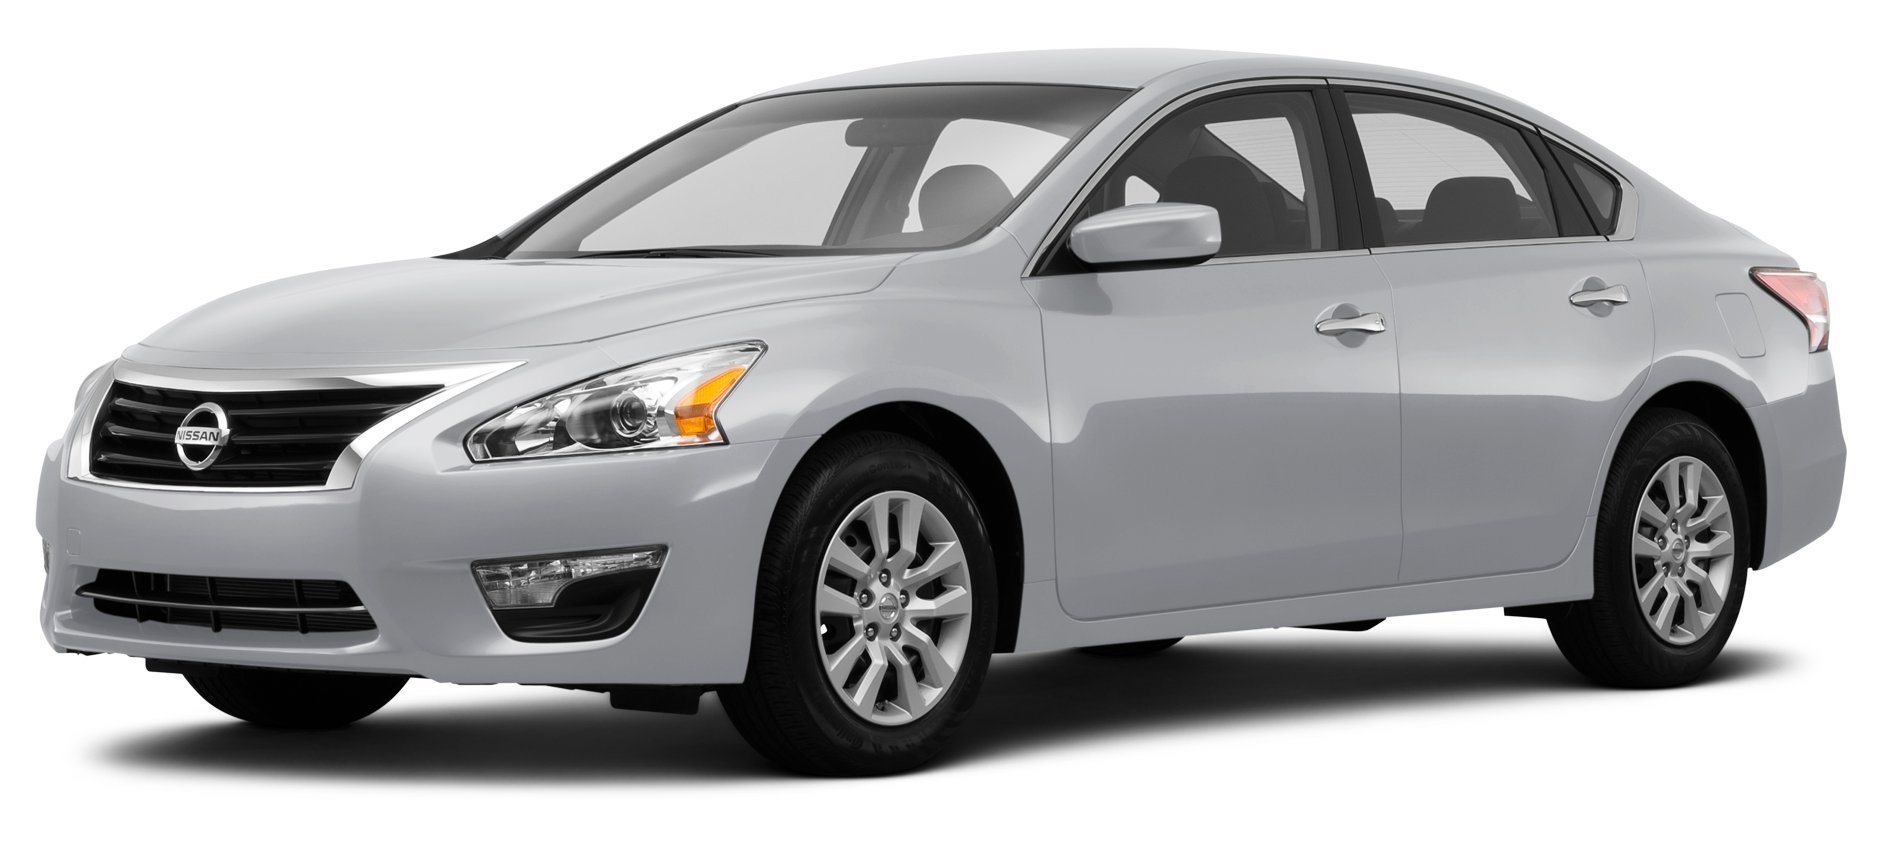 2014 toyota camry reviews images and specs vehicles. Black Bedroom Furniture Sets. Home Design Ideas